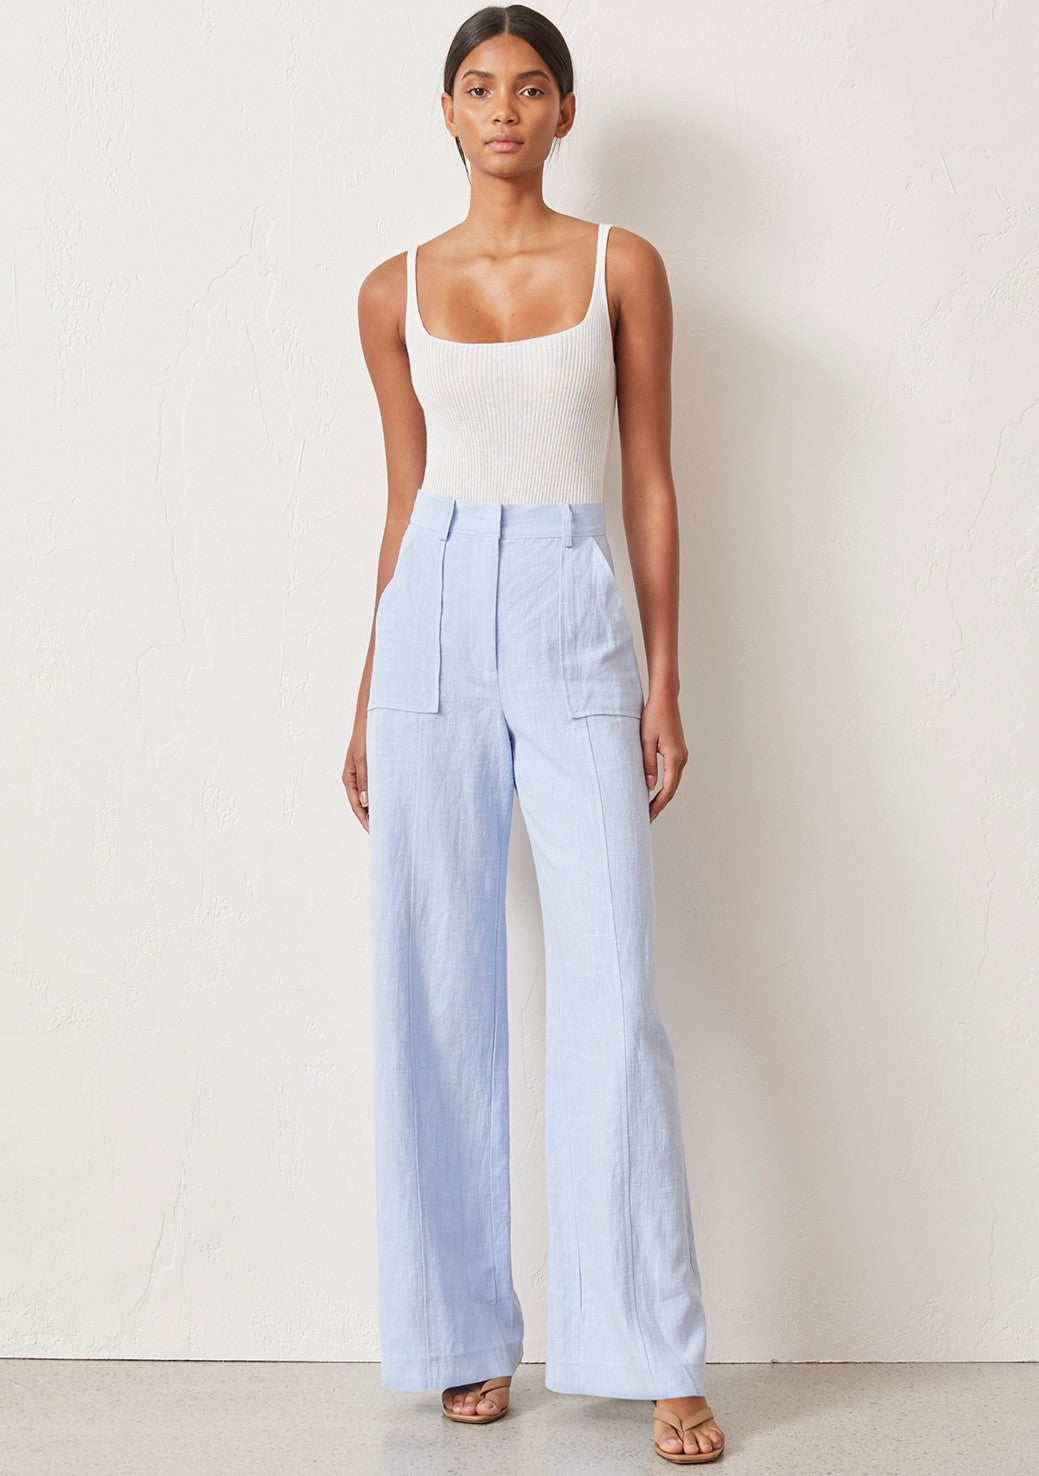 Bec & Bridge Anika Pant - Sky Blue